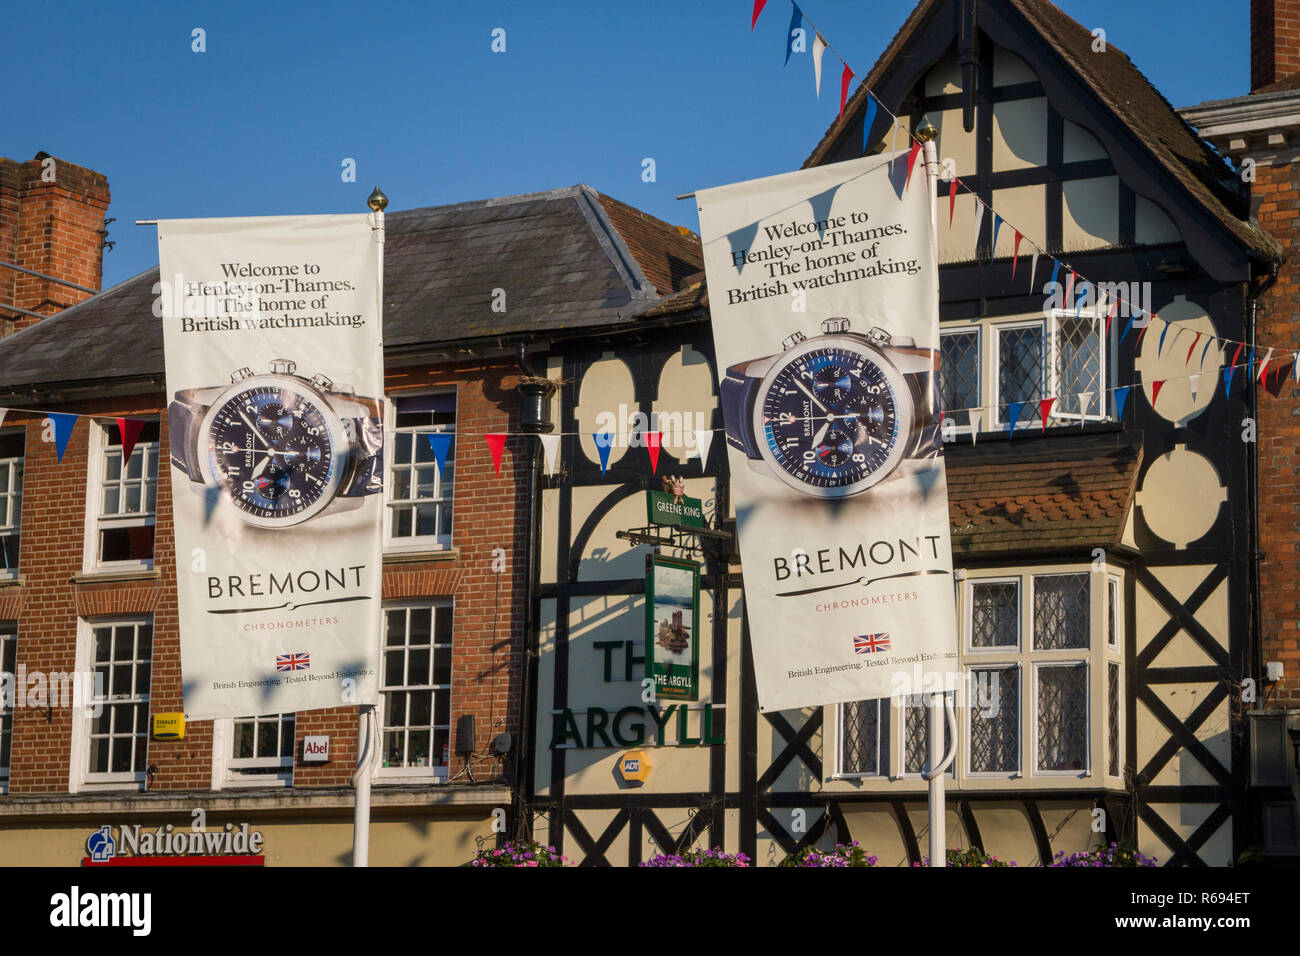 Banners advertising Bremont Chronometers in the centre of Henley during Henley Royal Regatta - Stock Image